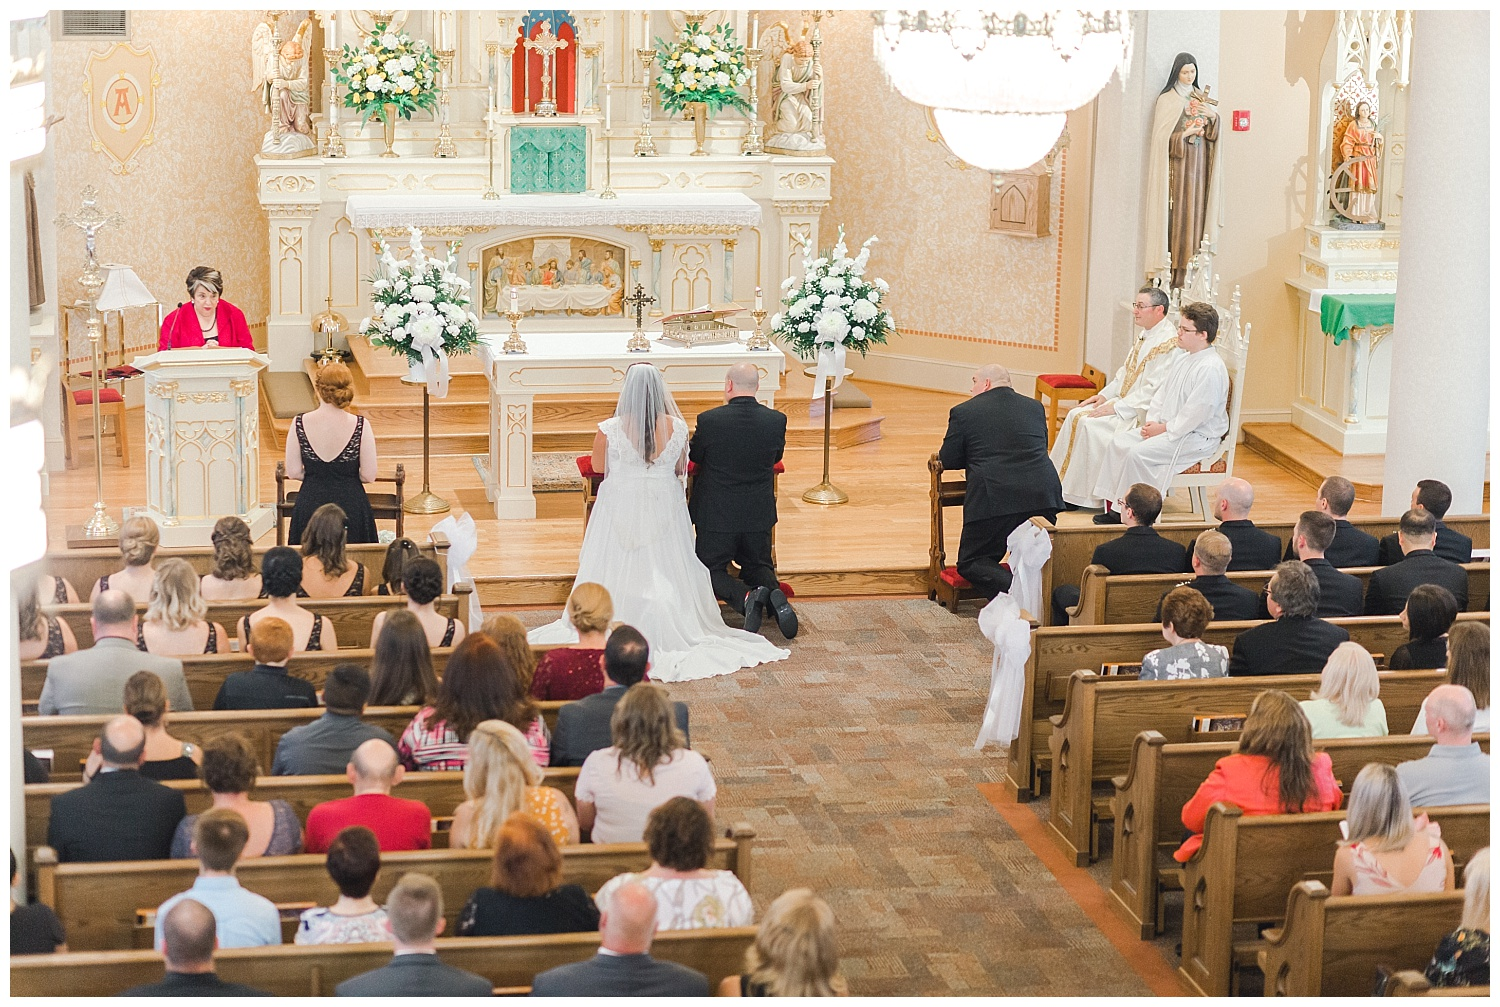 A Black and Gold Catholic Church Wedding in Wilkes Barre Pennsylvania by lehigh valley pennsylvania based wedding and lifestyle photographer Jeannie Lytle of Lytle Photography   Company (17).jpg